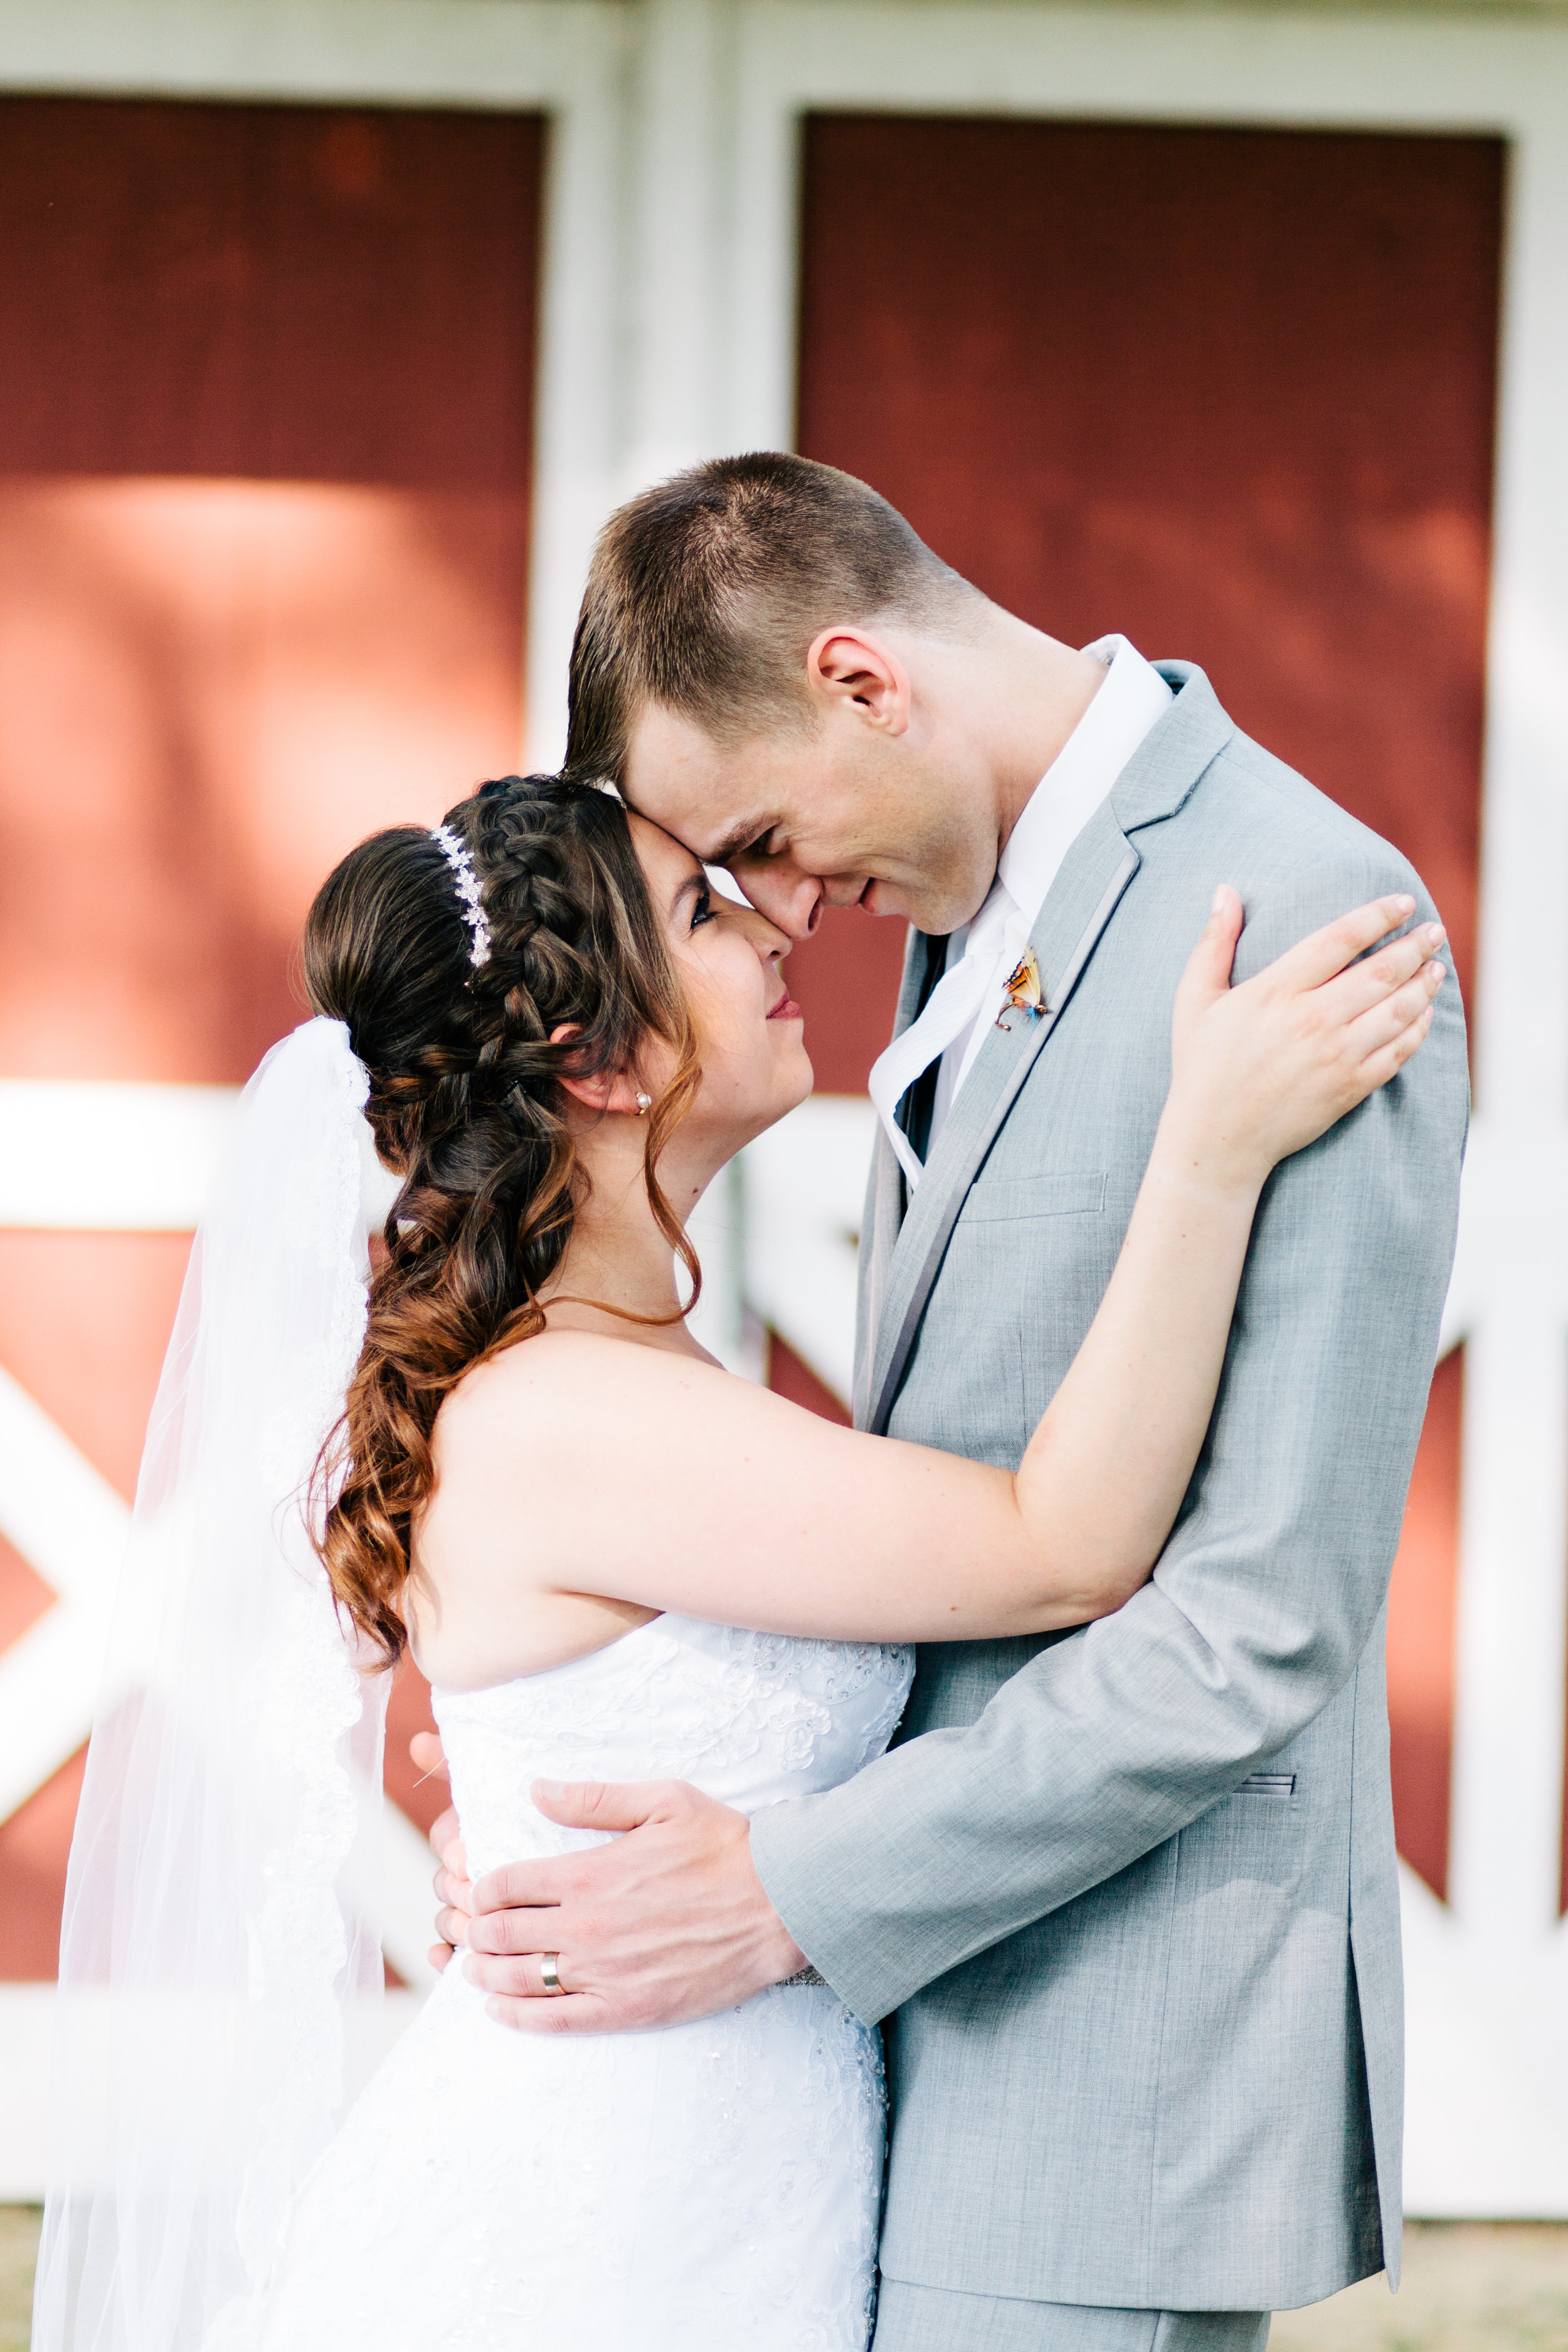 Michelle + Daniel at their Blissful Meadows Golf Club wedding (Uxbridge, MA)